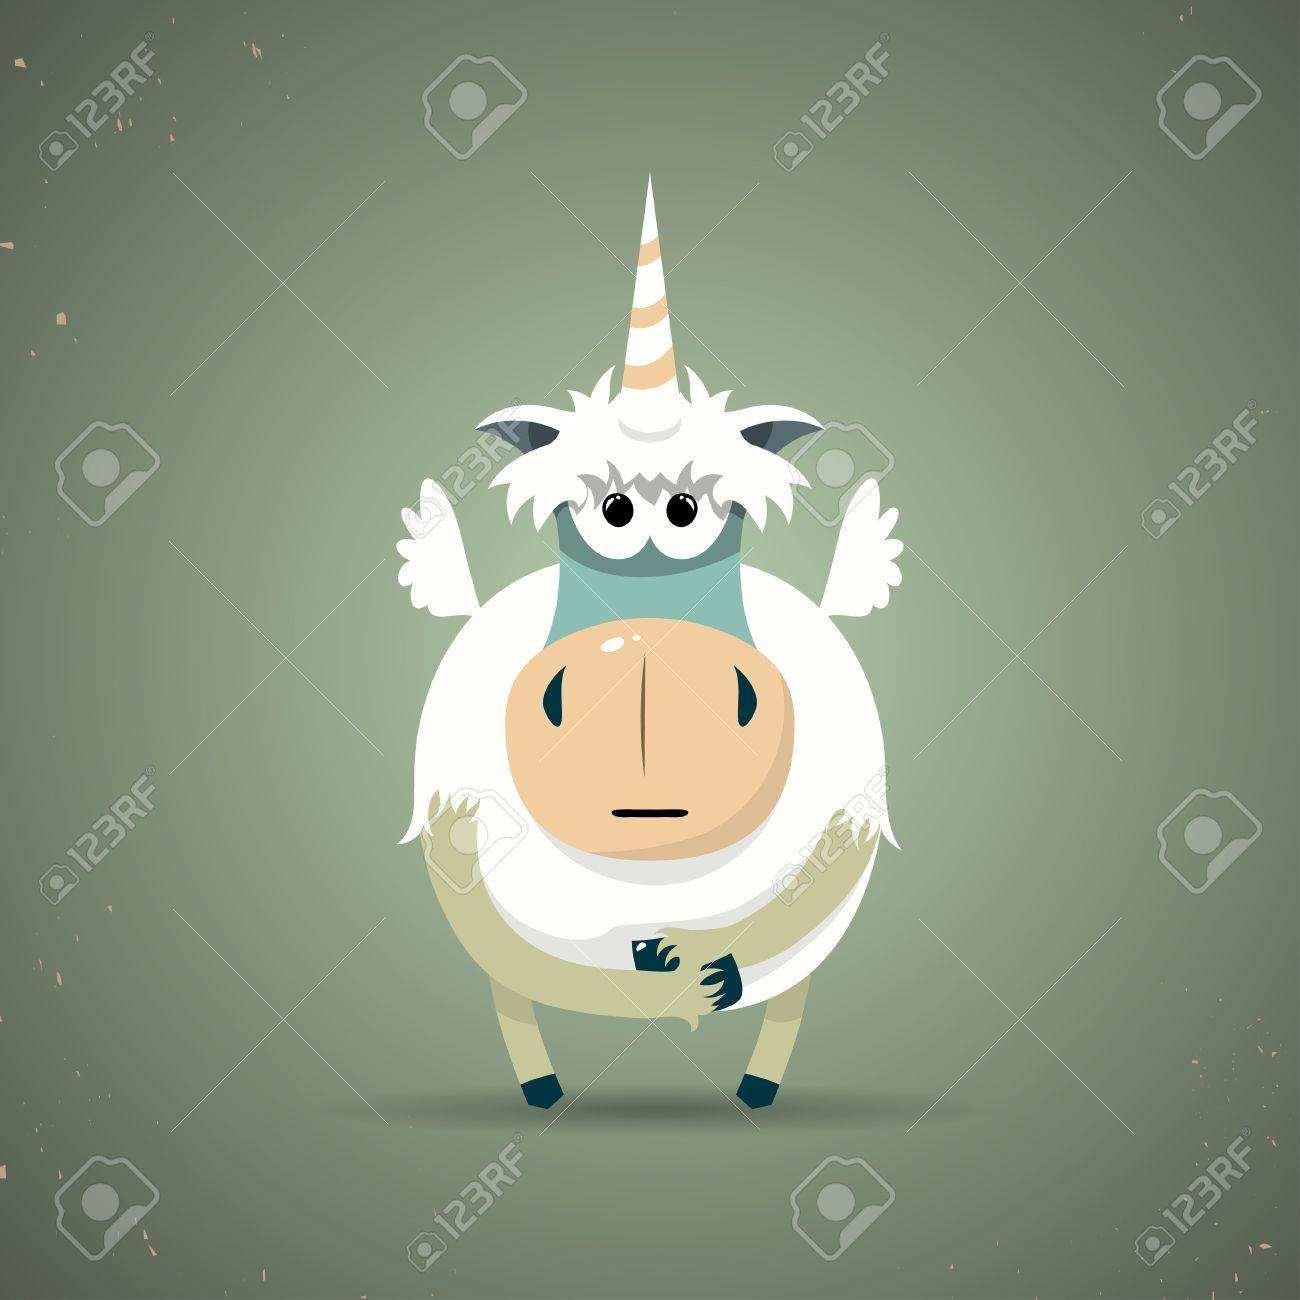 Cartoon illustration of a cute little mythical magic unicorn with a spiral horn and white body symbolic of virginity, chastity and purity Stock Vector - 25120182